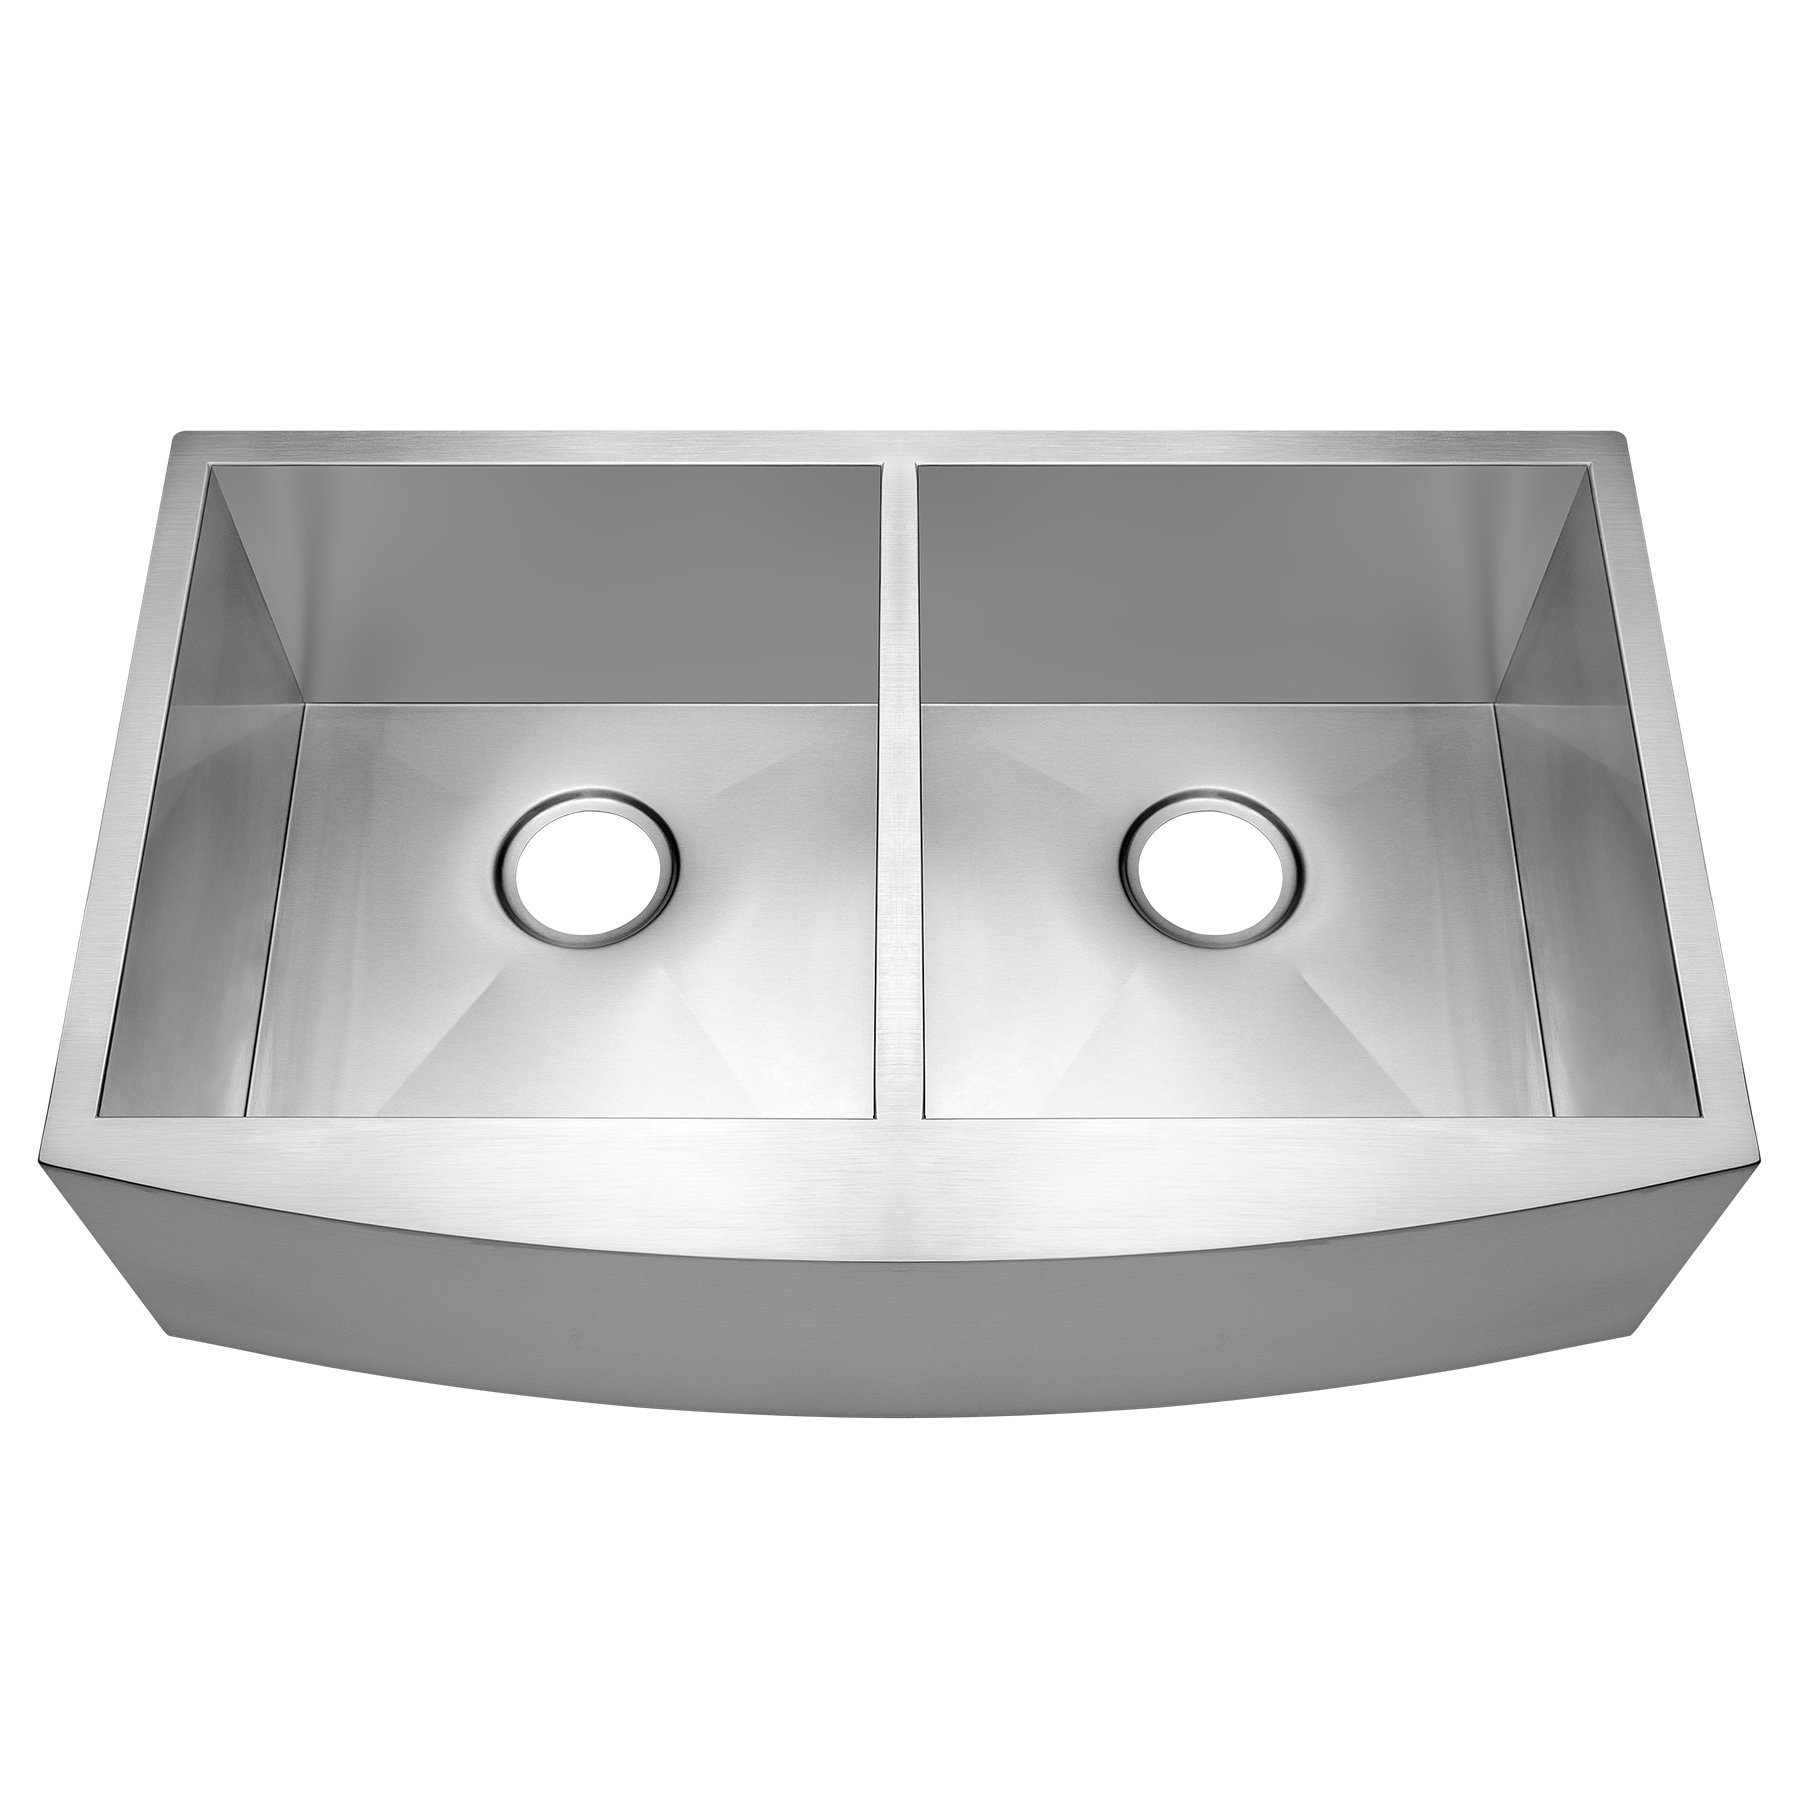 AKDY 33'' x 20'' x 9'' Undermount Apron Double Bowls Basin 18 Gauge Handmade Stainless Steel Farmhouse Kitchen Sink